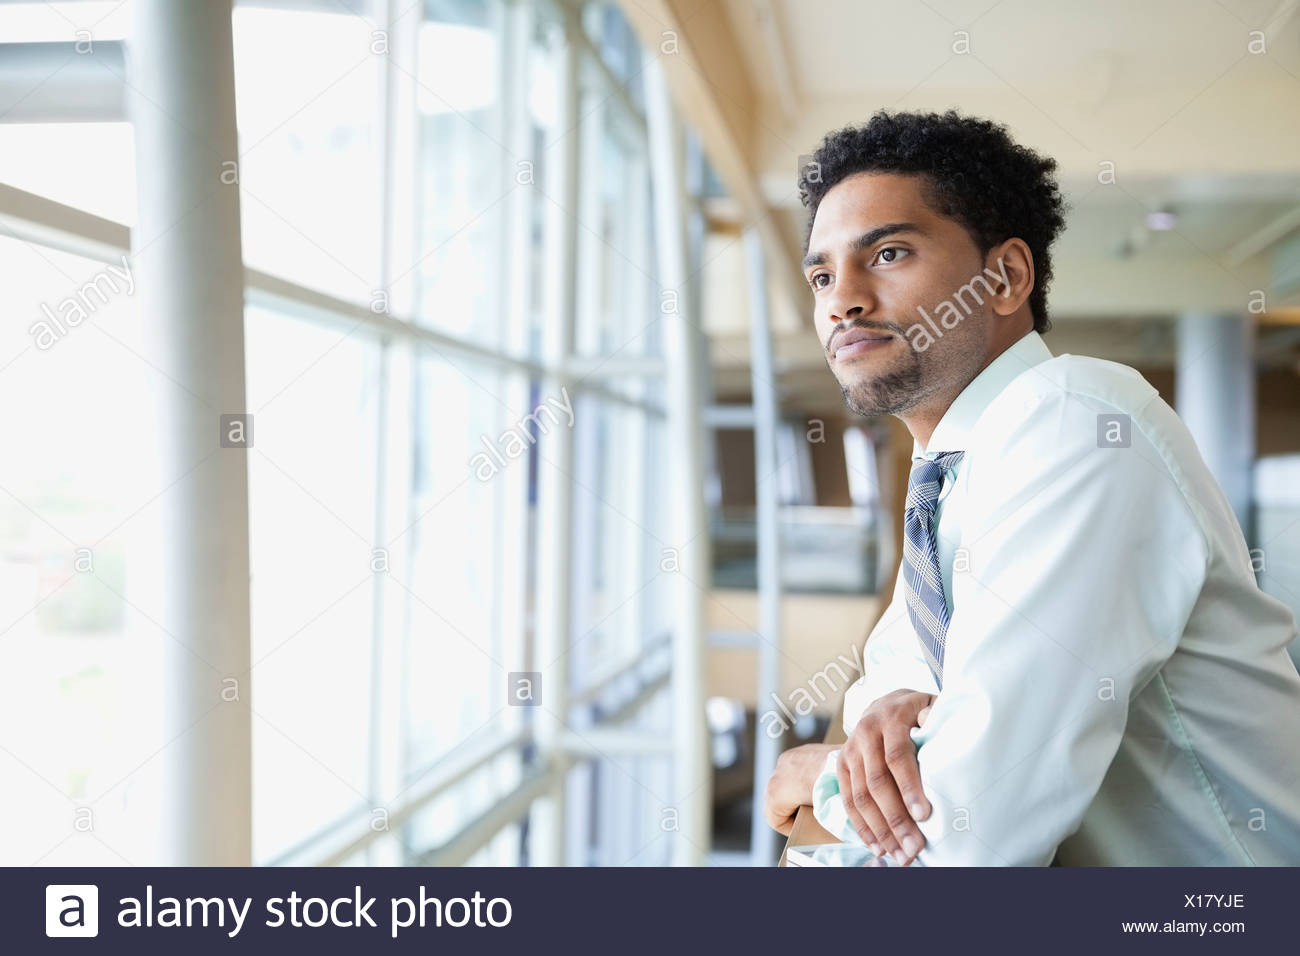 Side view of businessman leaning on railing - Stock Image